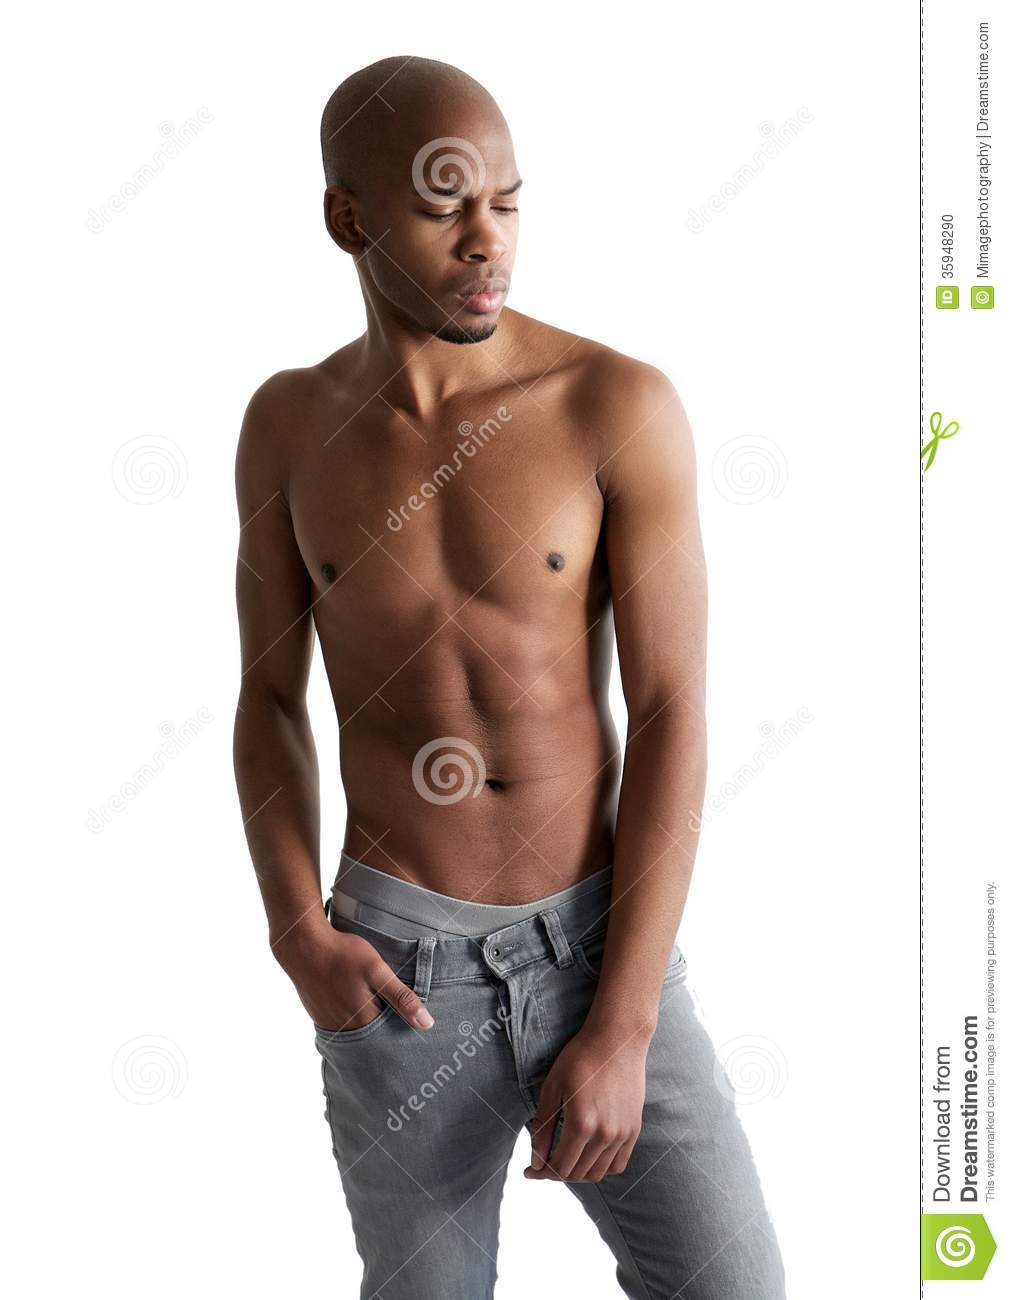 Handsome Young Man Posing With No Shirt Stock Photo Image Of Model